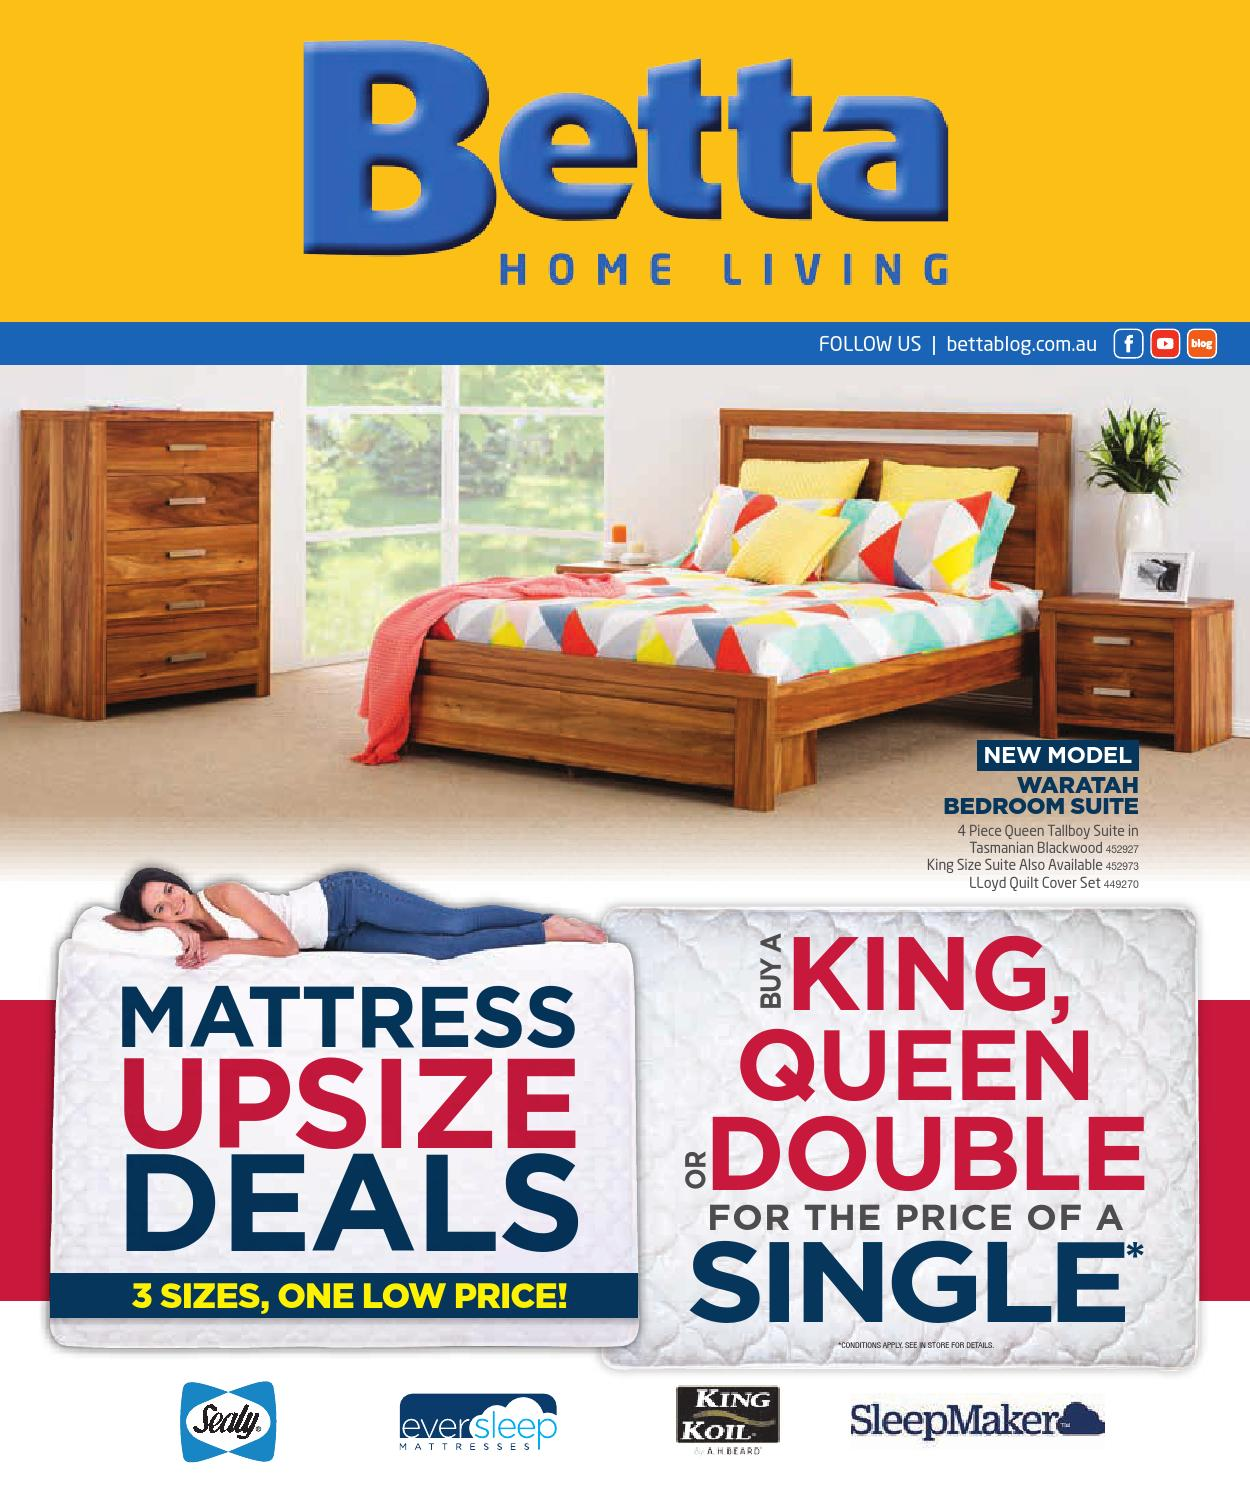 Betta October Furniture Catalogue By Betta Home Living